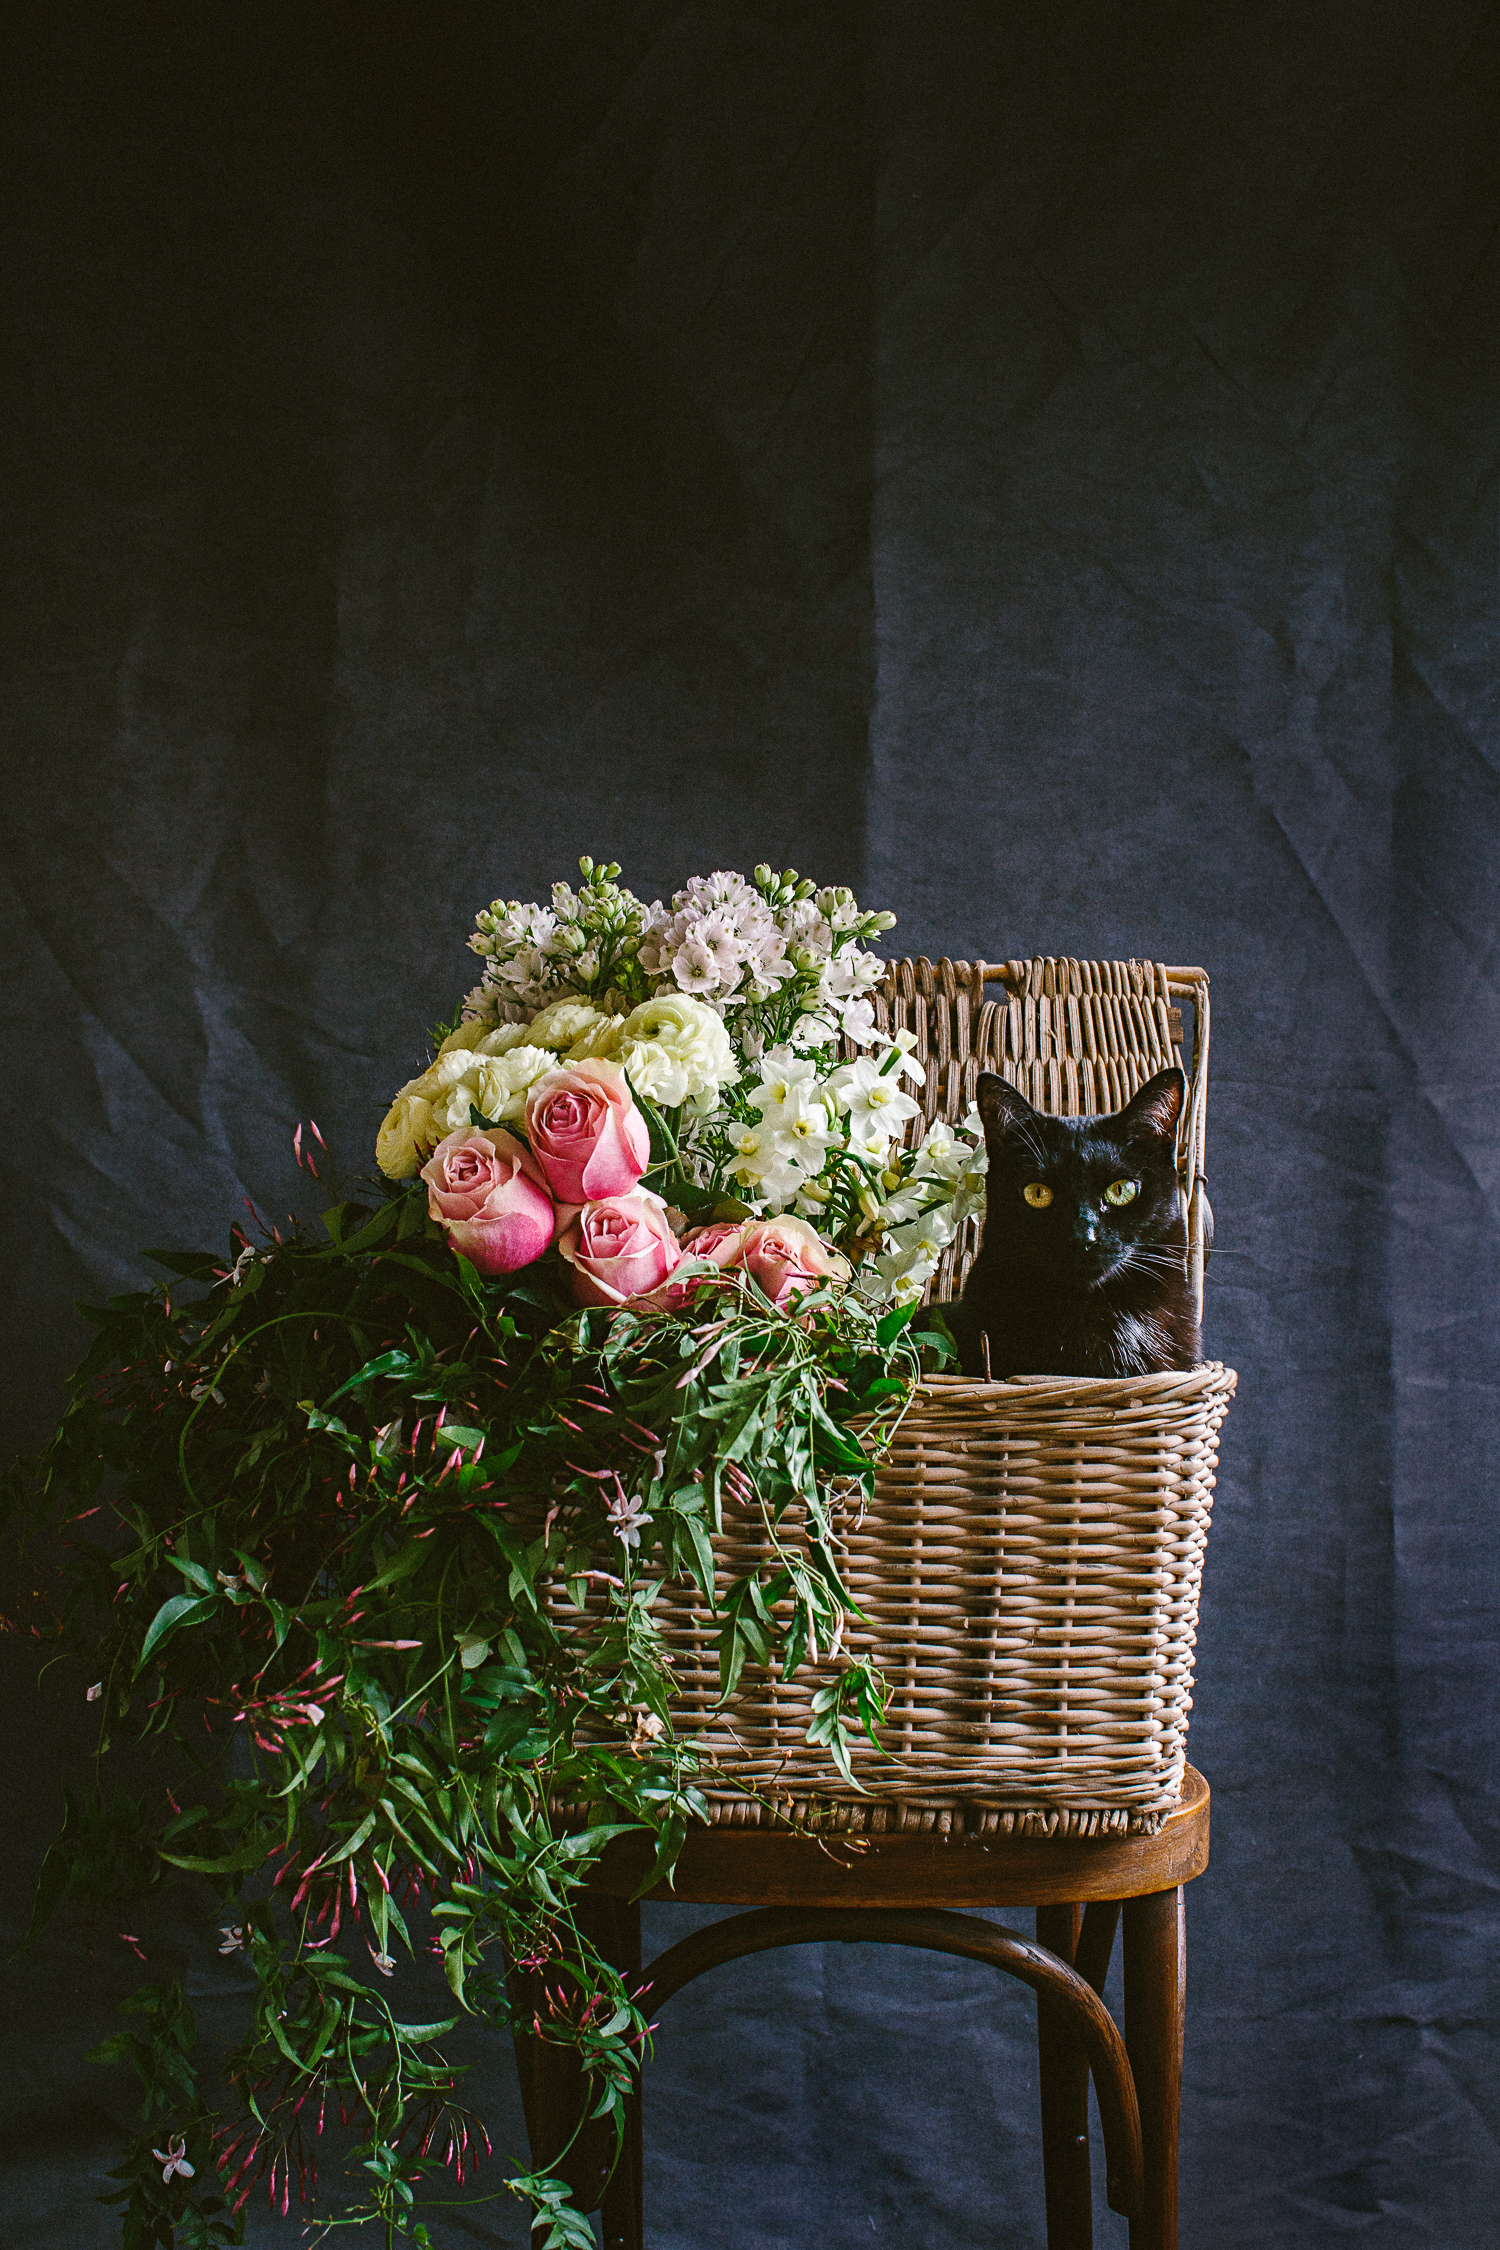 twoguineapigs_photography_ruby_slippers_cat_and_floral_series_1500-15.jpg